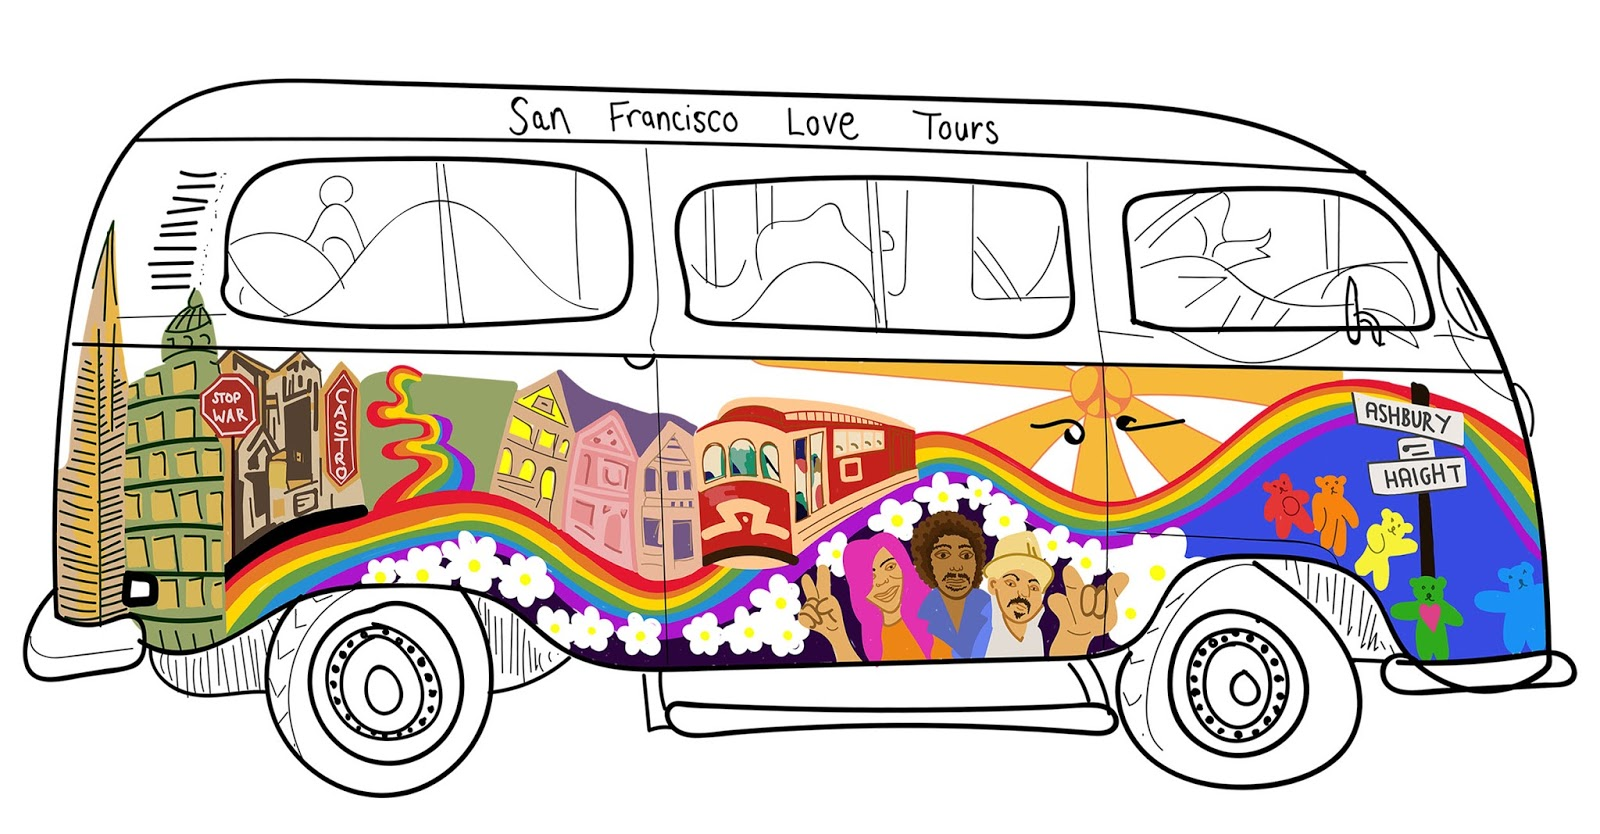 San Francisco love tours camper van illustration